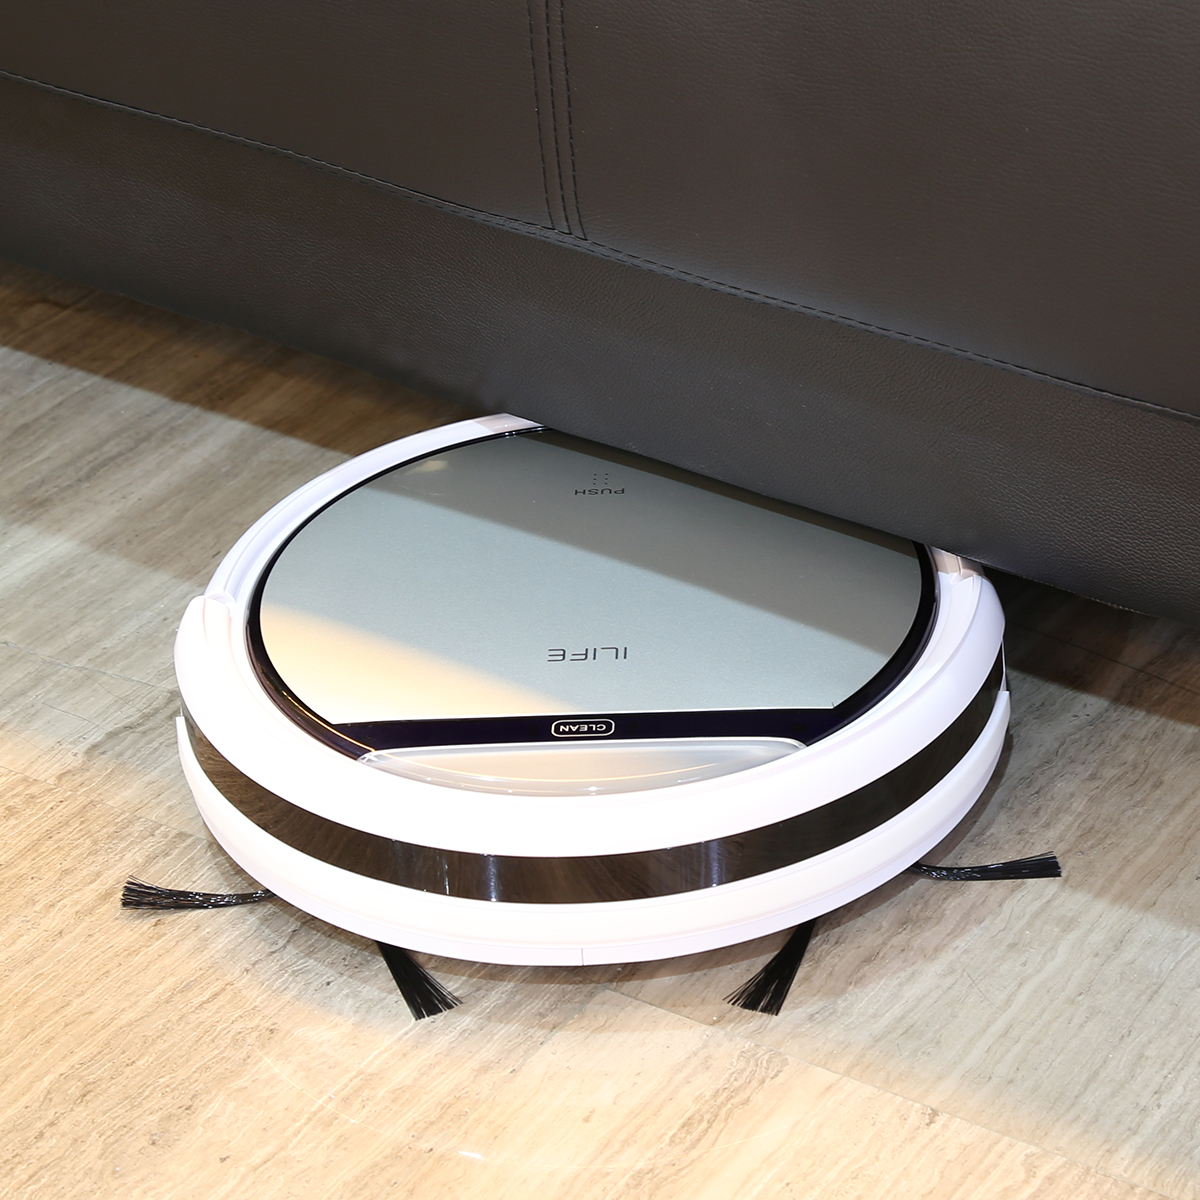 ILIFE V5 Smart Cleaning Robot Floor Cleaner Auto Vacuum Microfiber Dust  Cleaner Automatic Sweeping Machine   Walmart.com